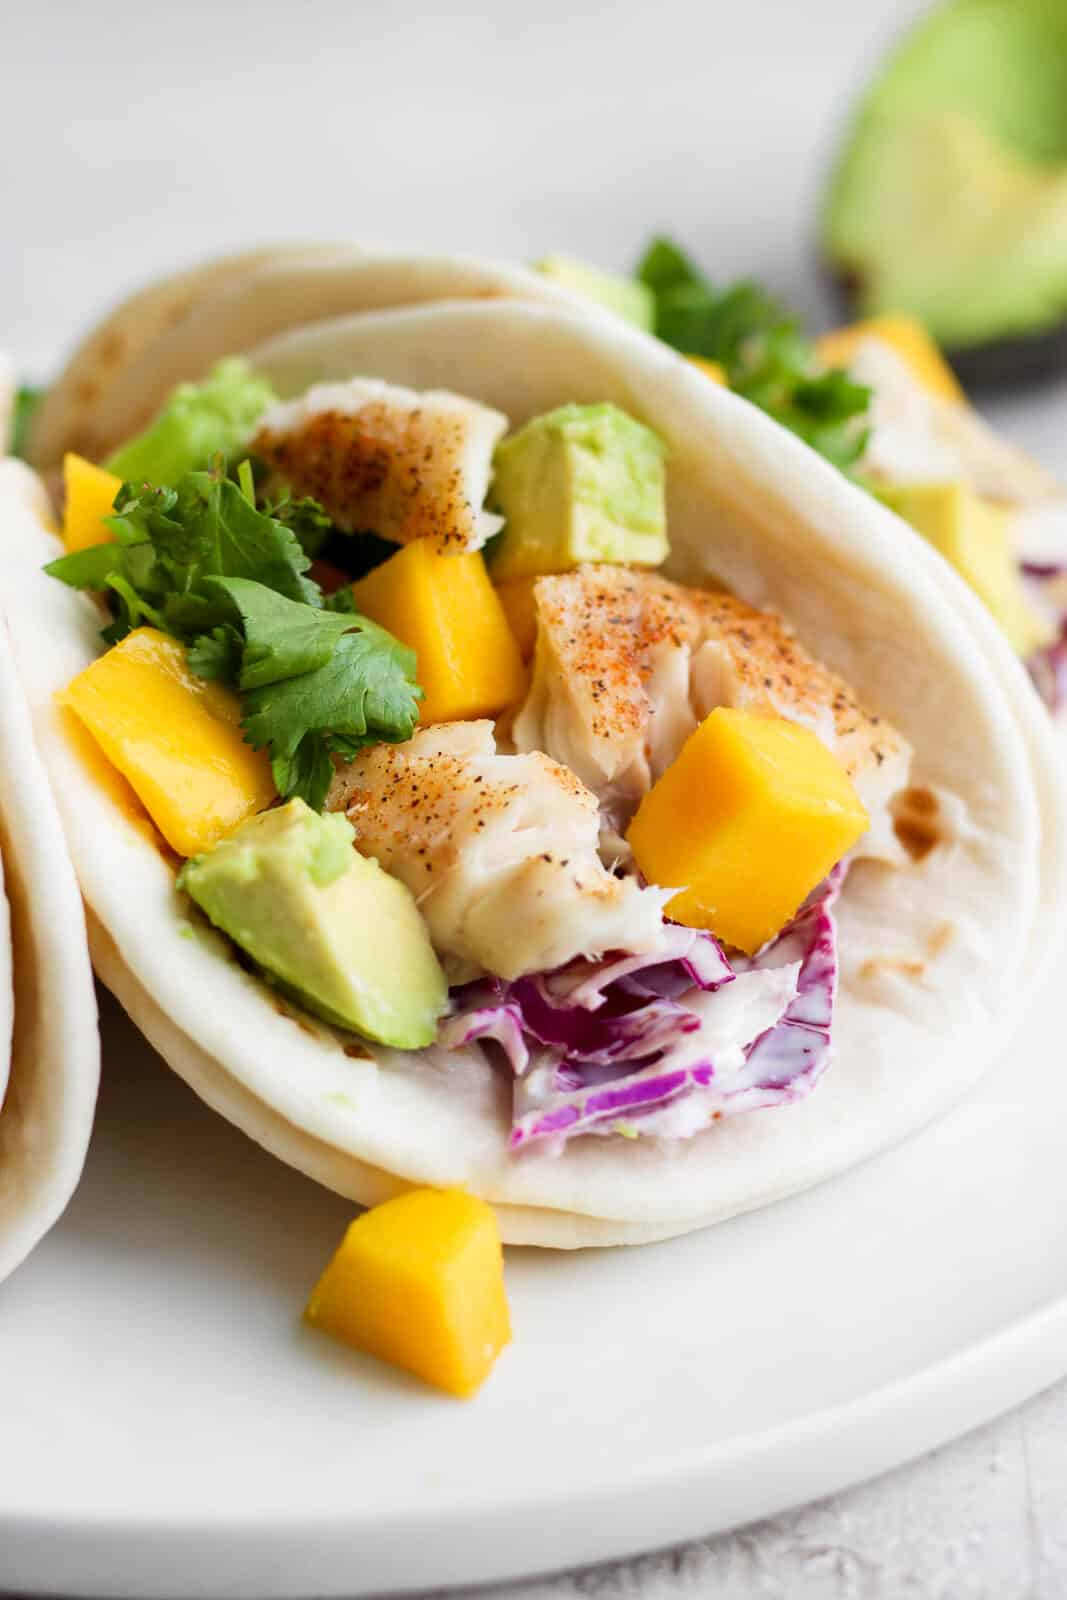 A tilapia fish taco on a plate with avocado and mango.